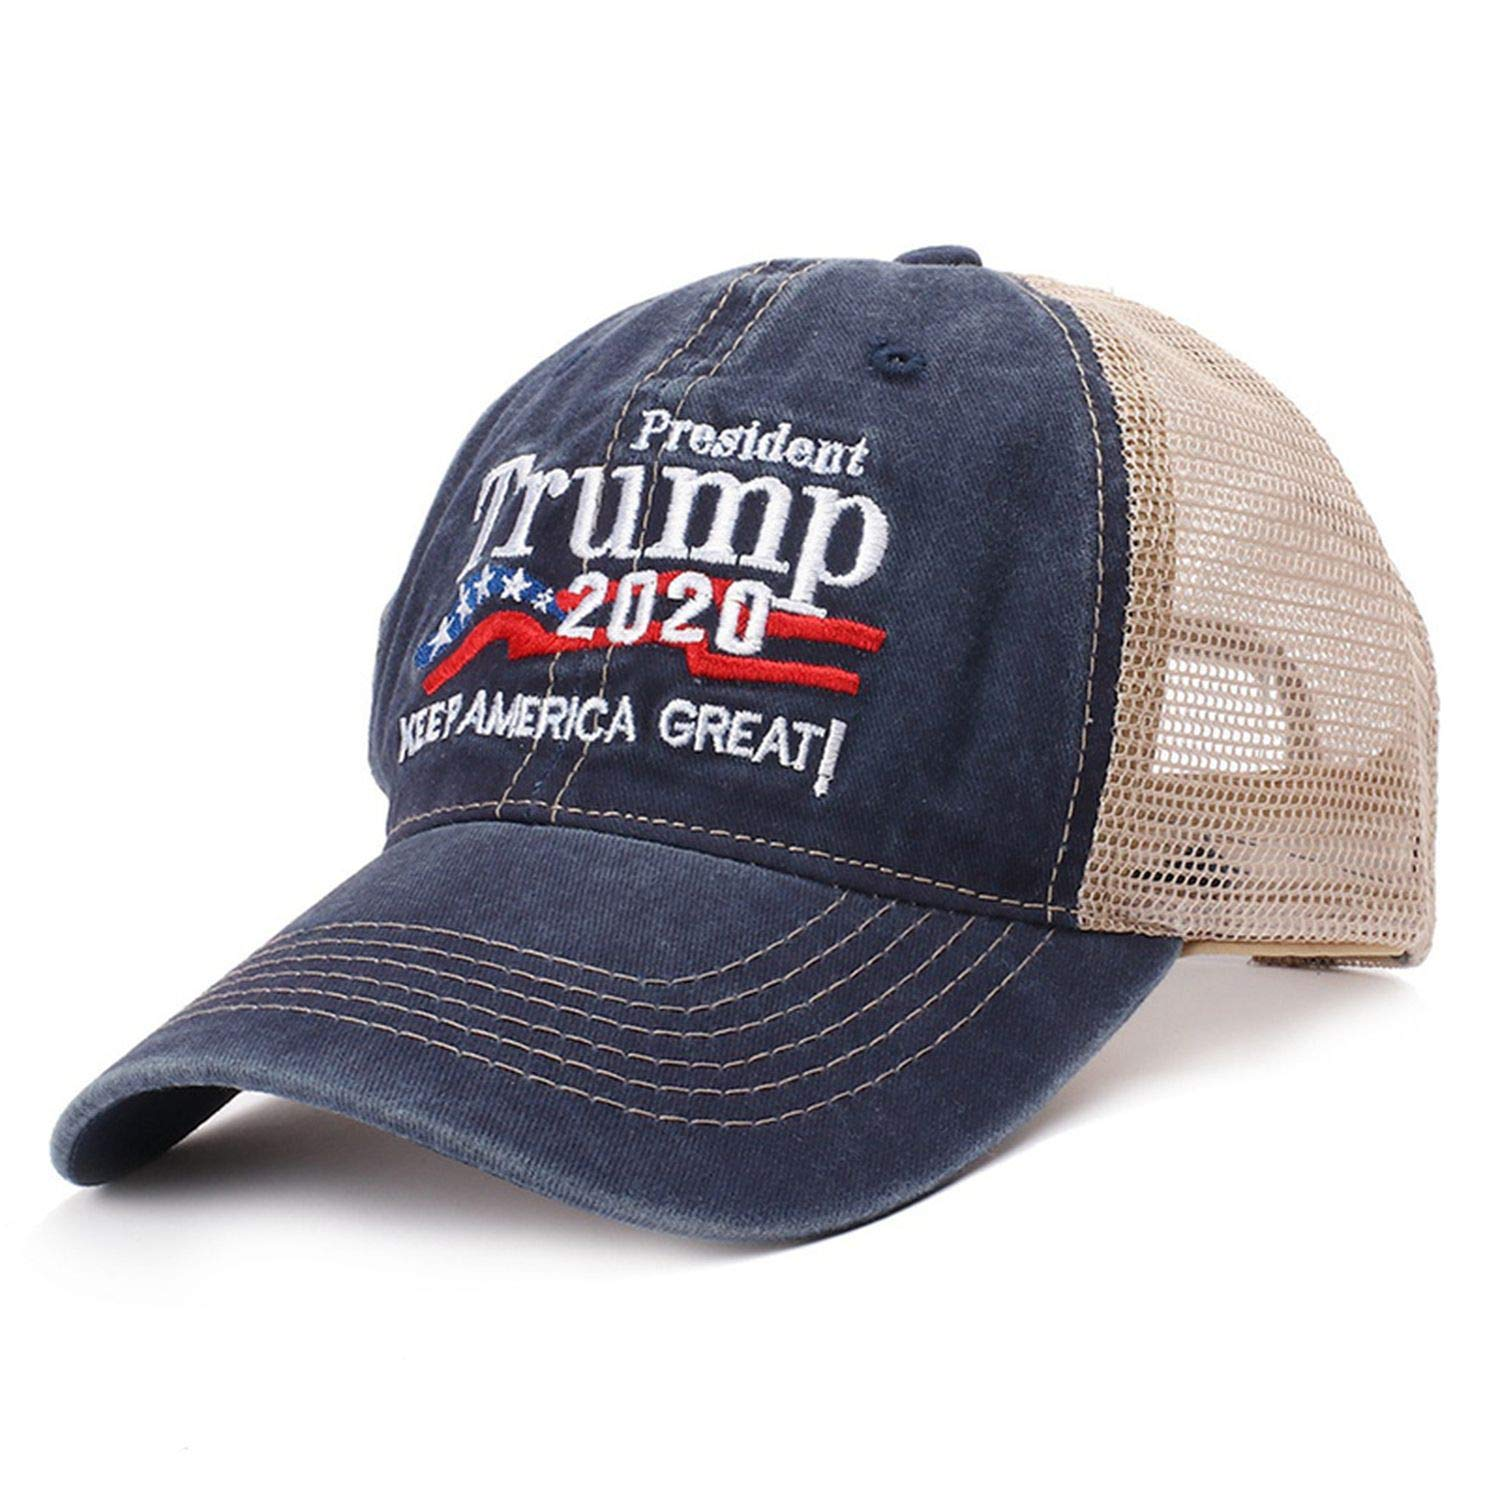 Trump 2020 Red Hat Mesh Baseball Cap Keep America Great Embroidery Letter Camouflage Army Trucker,RD